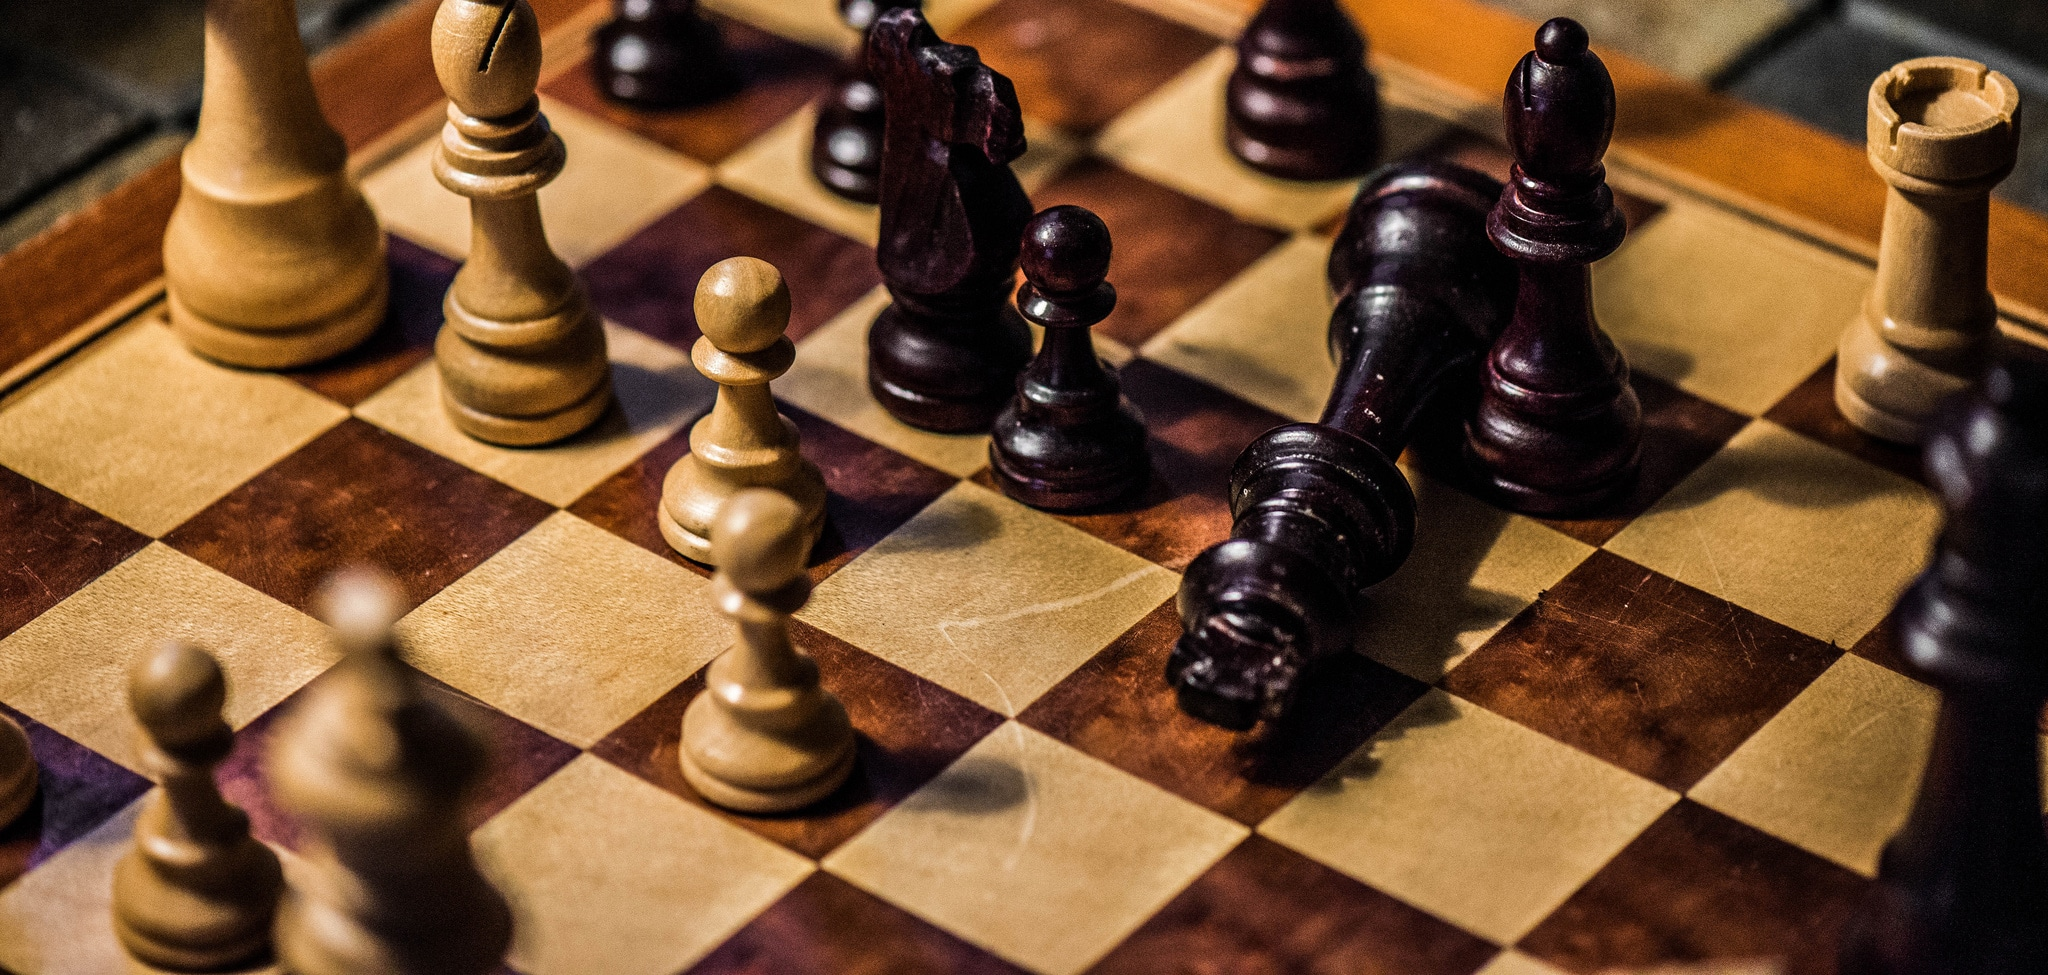 Best Chess Sets Reviewed in Detail